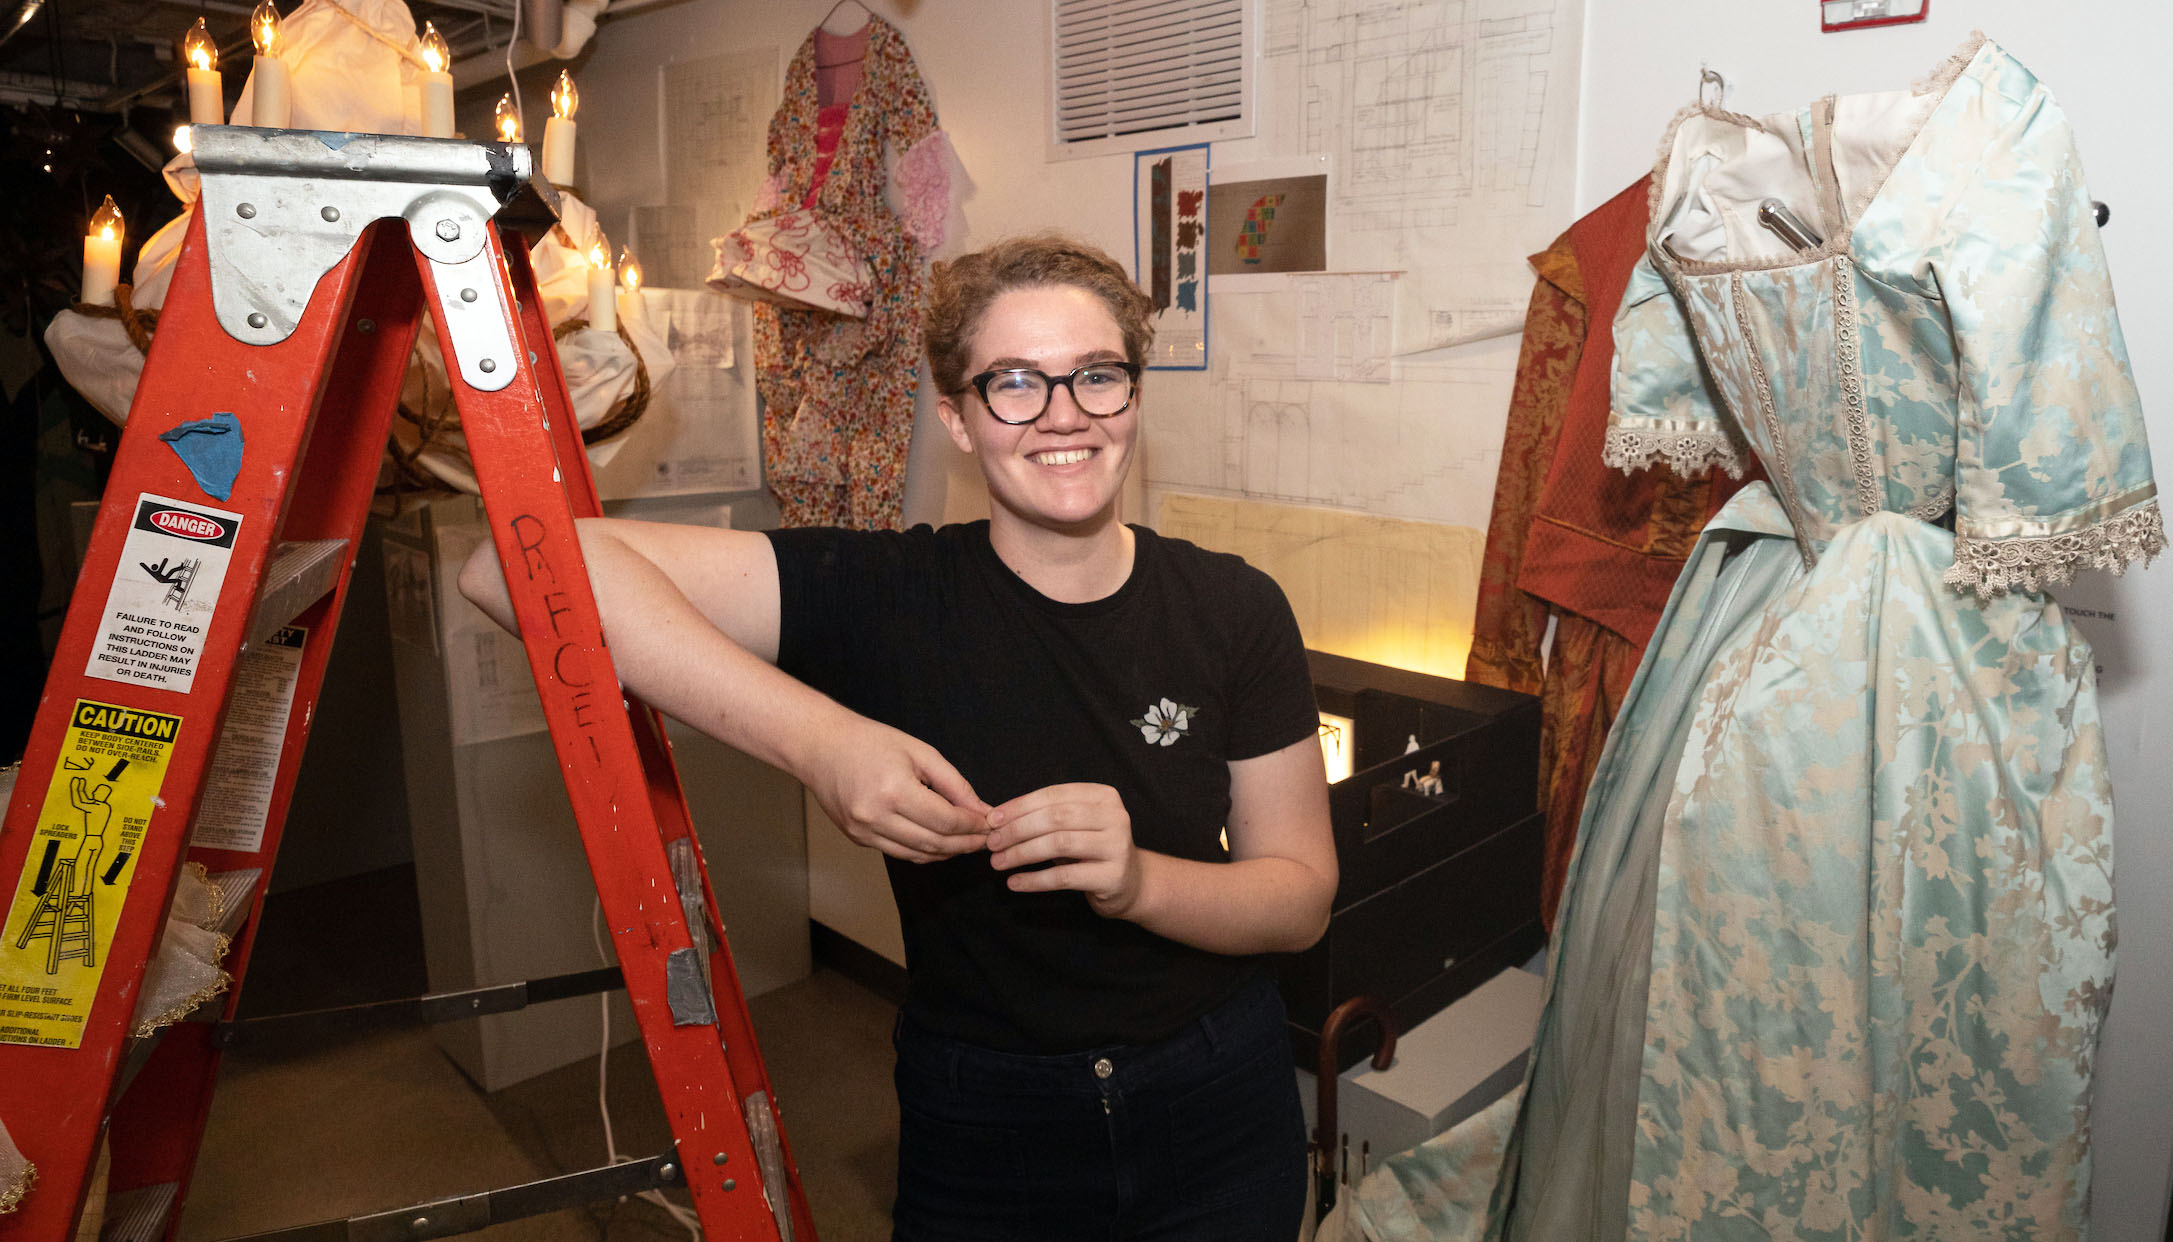 Micaleen Rogers stands with elbow resting on stepladder. Costume hangs on wall on stage right